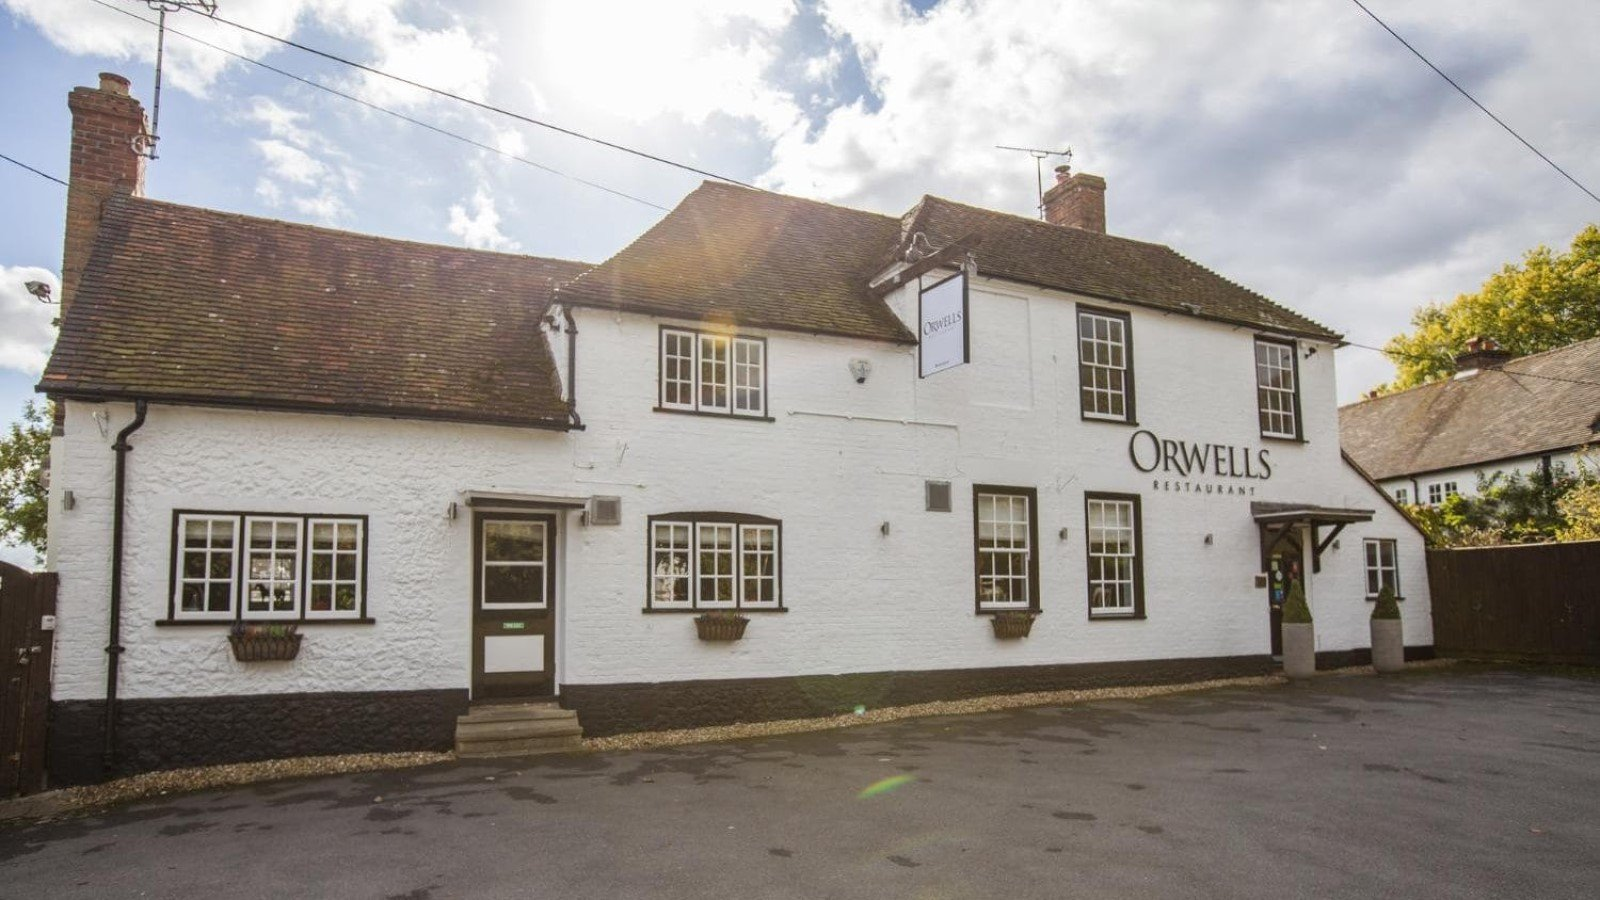 Orwells Restaurant, Henley-on-Thames, Oxfordshire